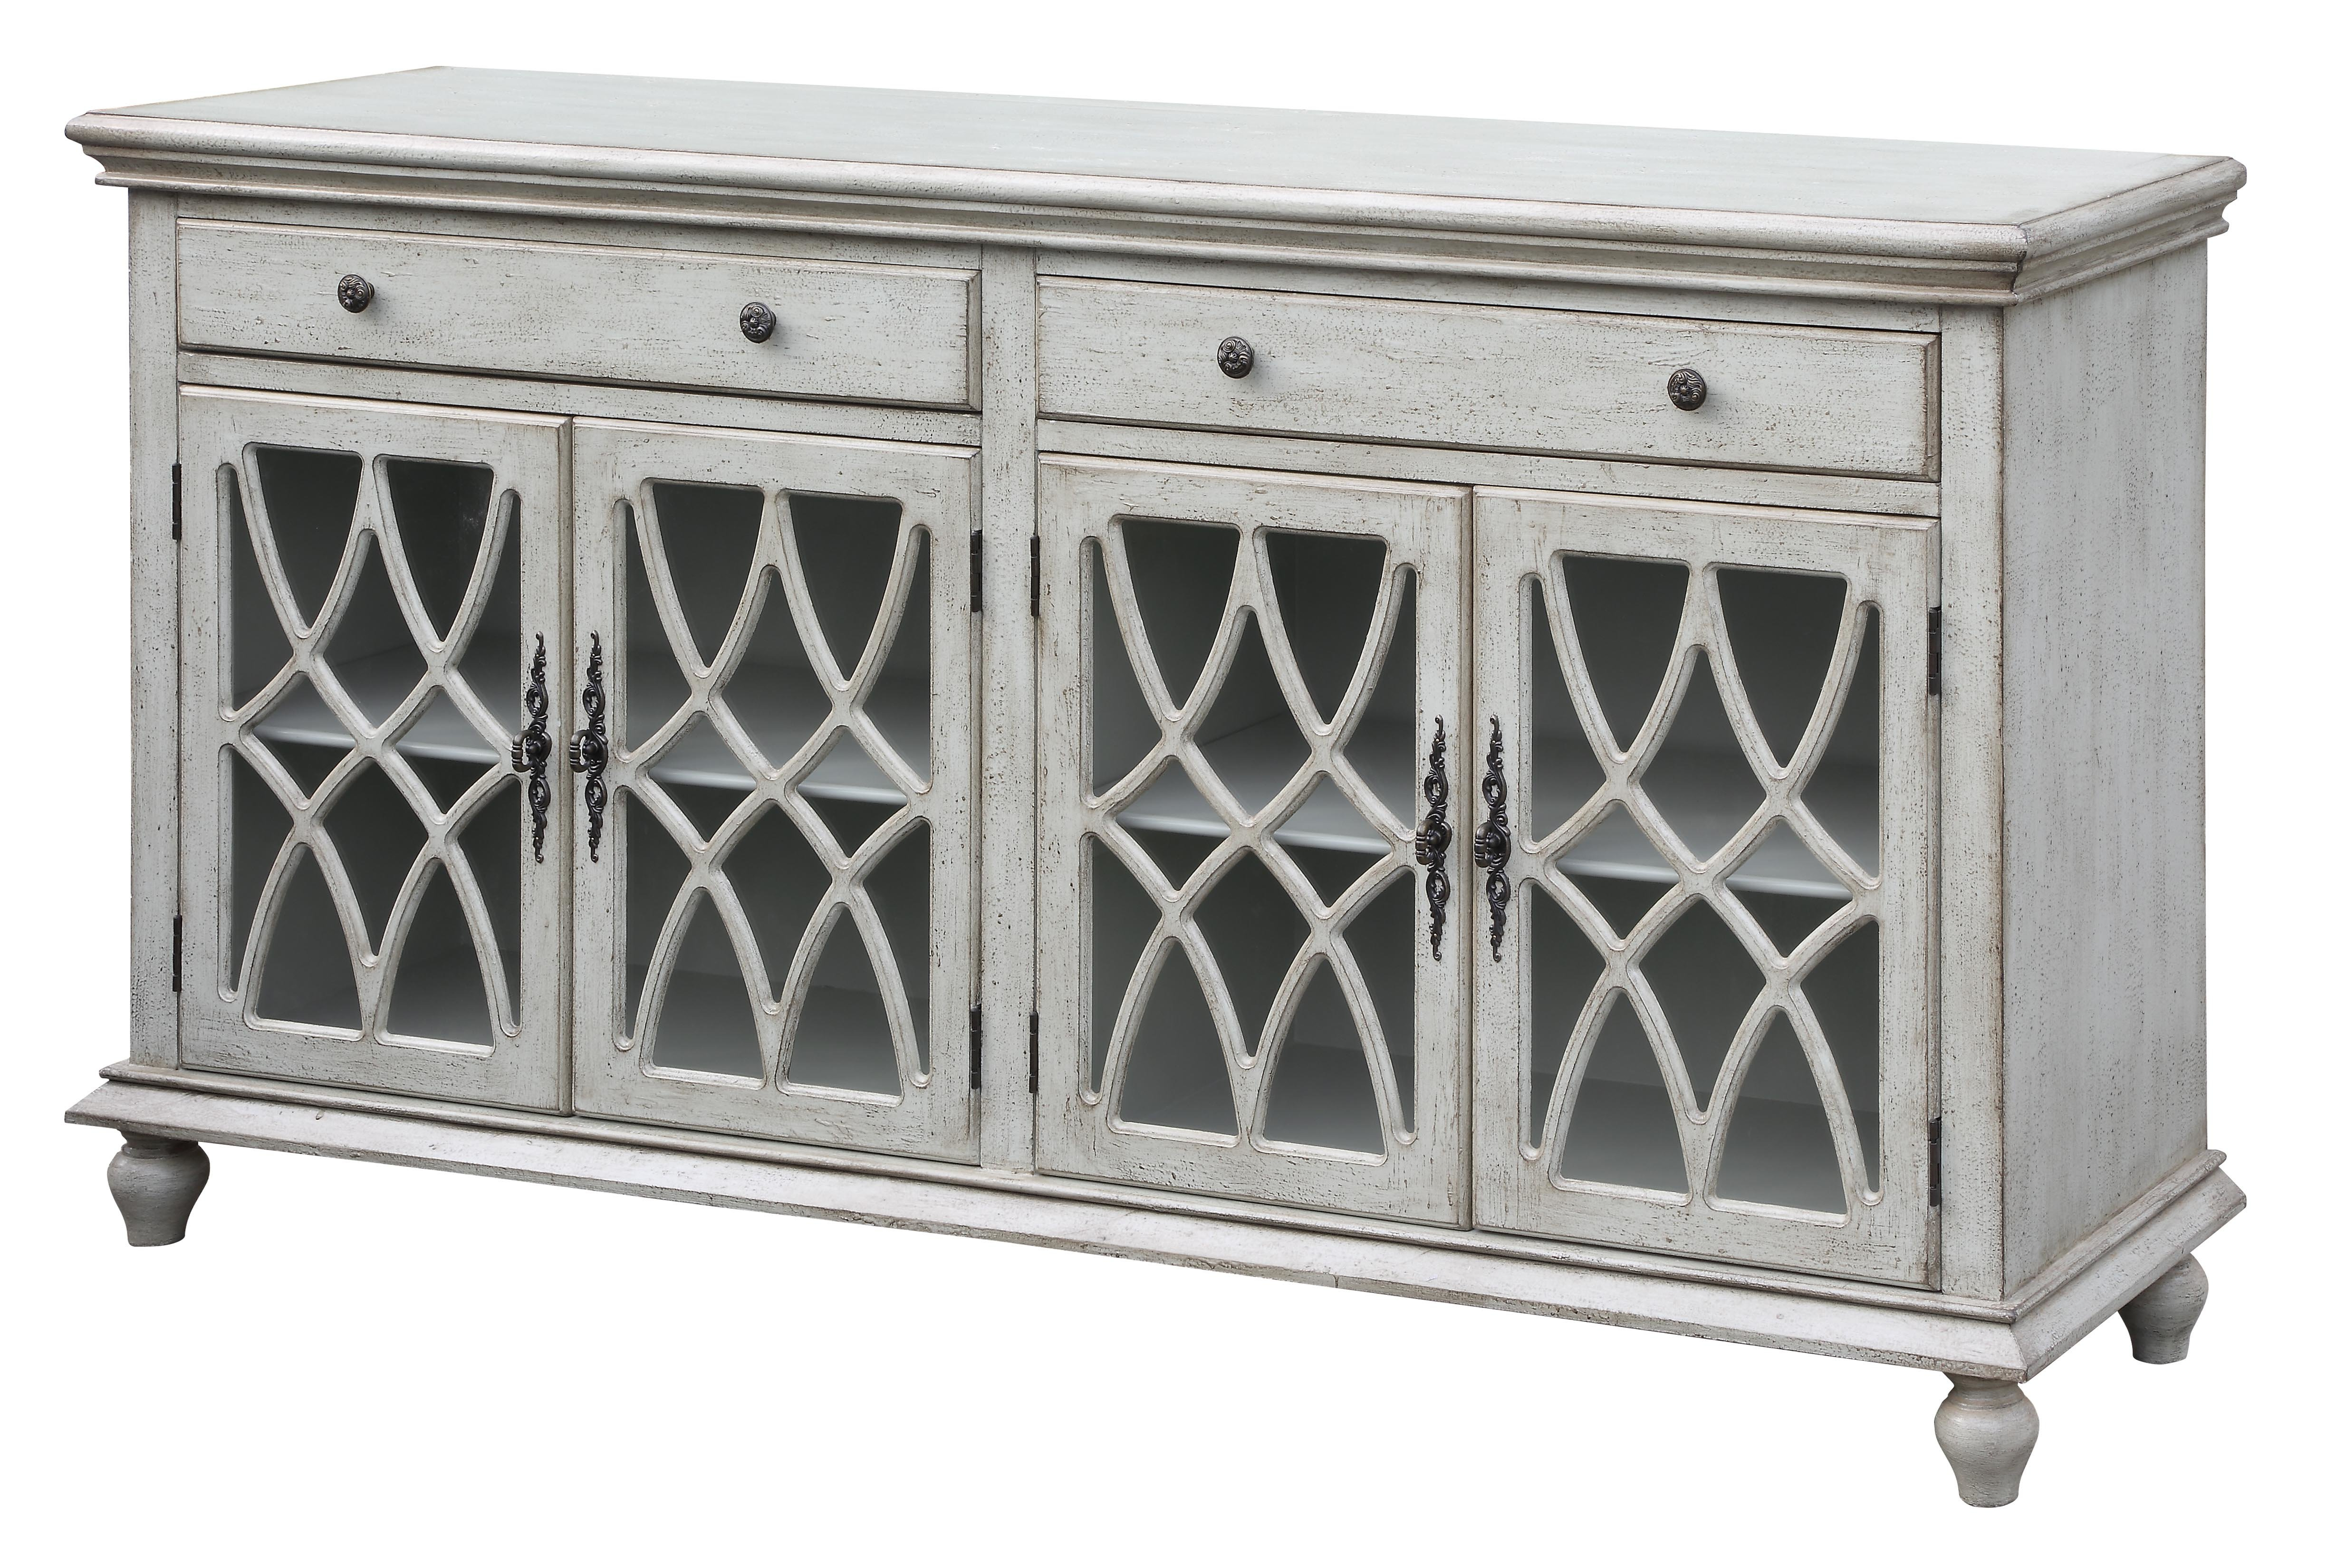 Grey Sideboards & Buffets | Joss & Main Intended For Casolino Sideboards (View 10 of 20)